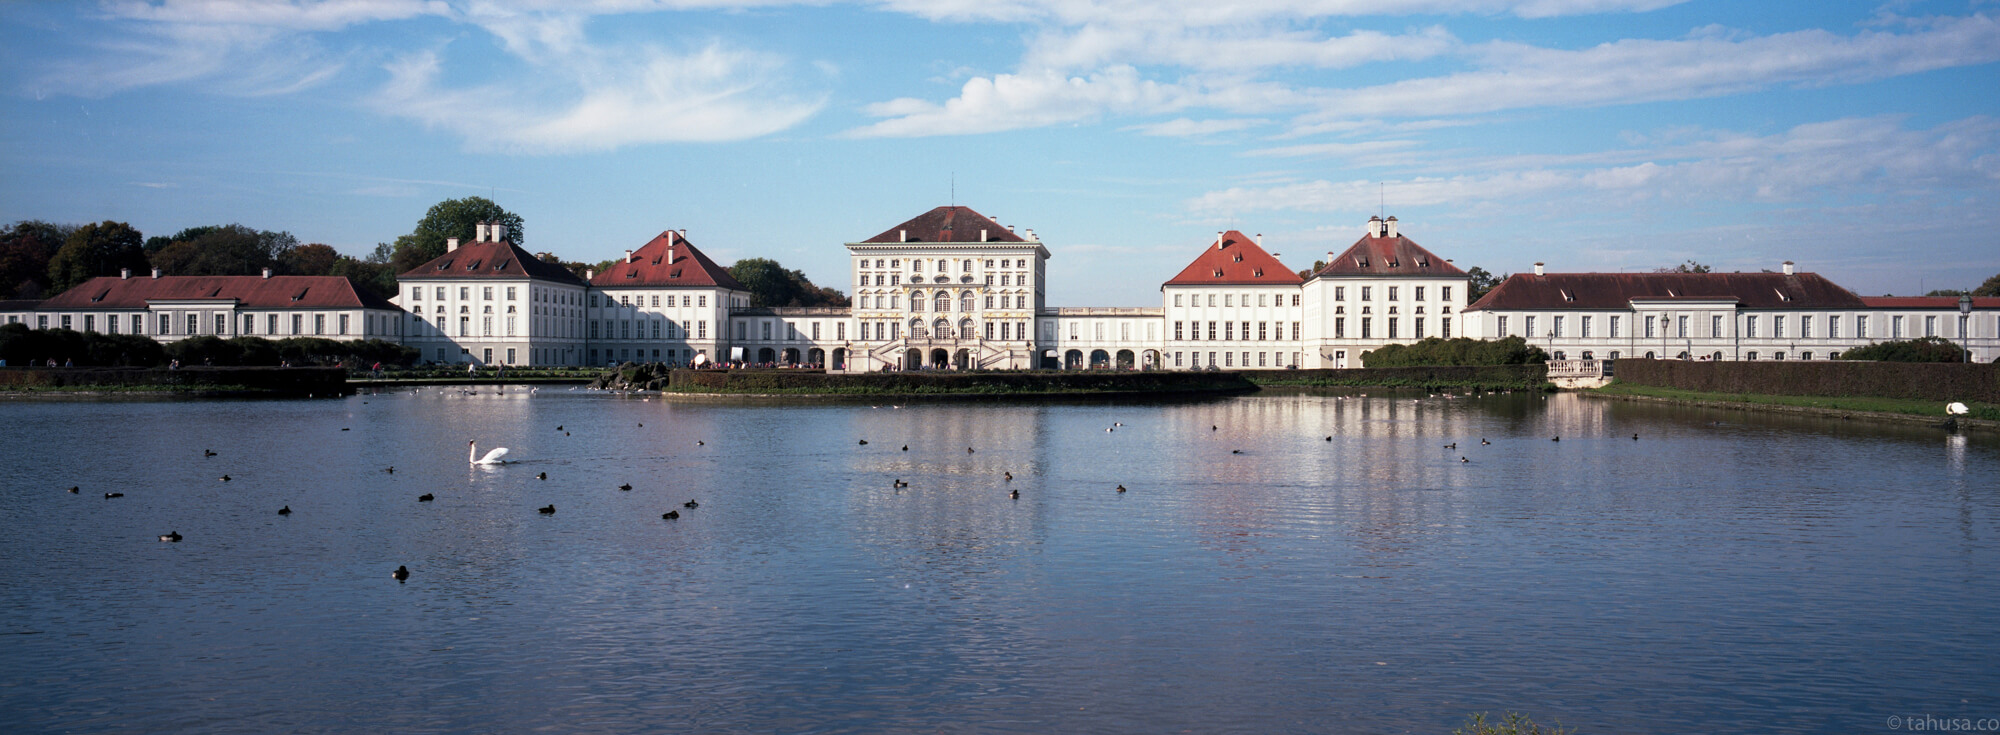 Nymphenburg-palace-Munich-GermanyHasselblad-Hassel-Xpan-45mm-f4-pano-panrama-panoramic-scenic-view-Kodak-Ektar-100-iso-100-low-speed-film-film-photography-film-shooter-Leica-lens-travel